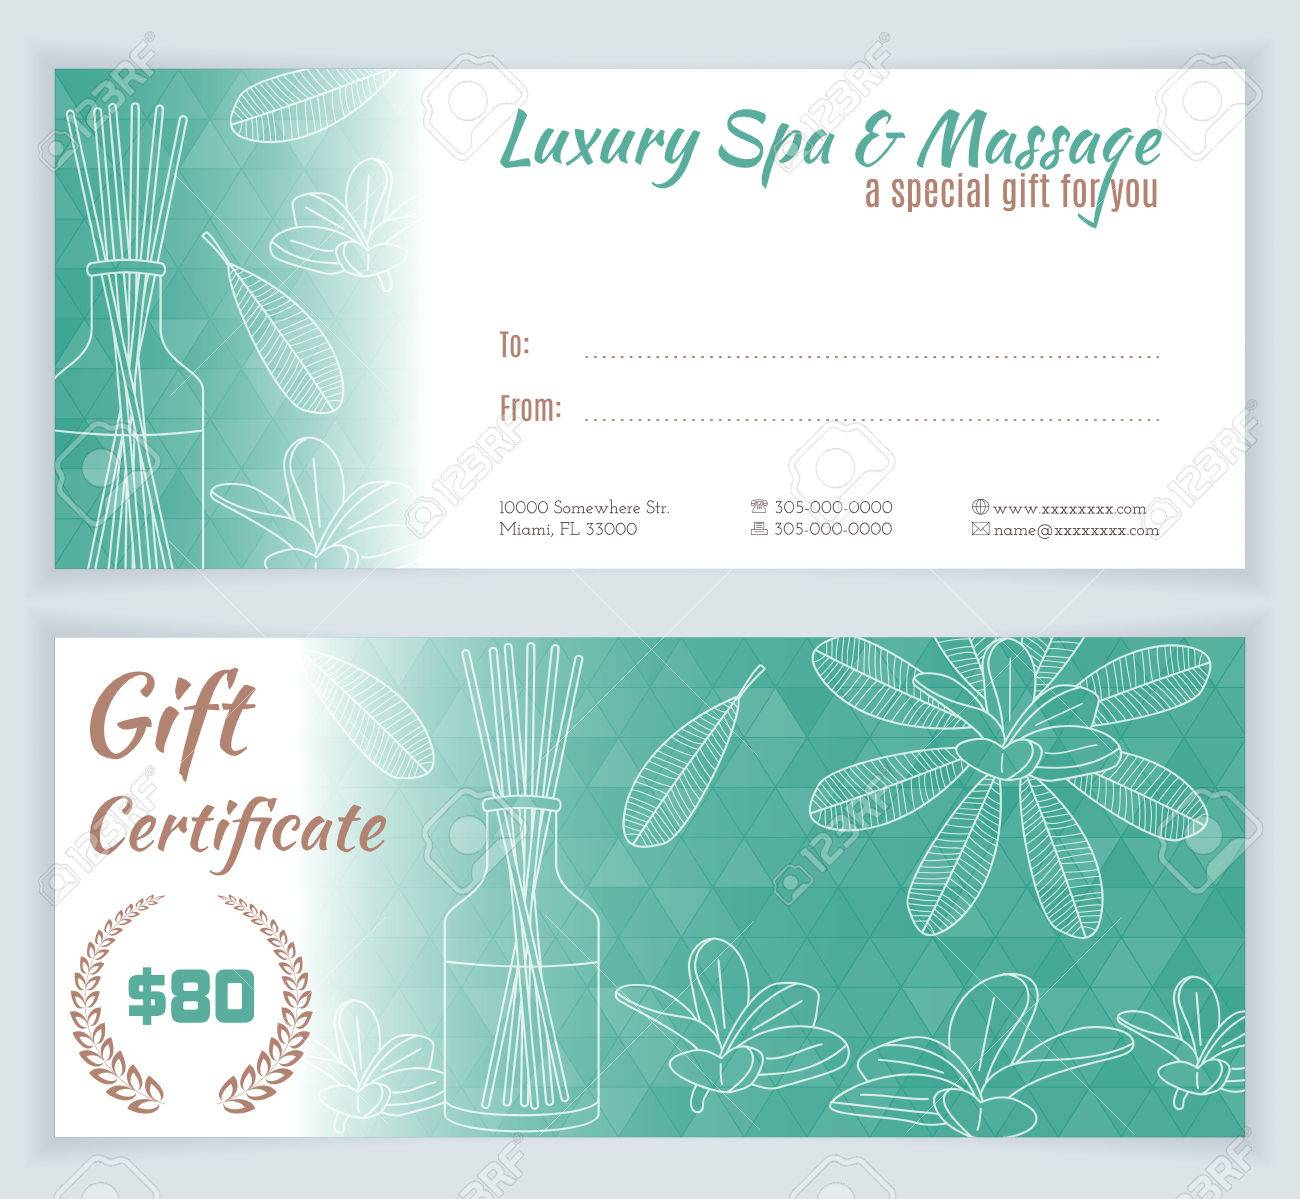 Spa massage gift certificate template with hand drawn reed spa massage gift certificate template with hand drawn reed fragrance diffuser stock vector yadclub Choice Image